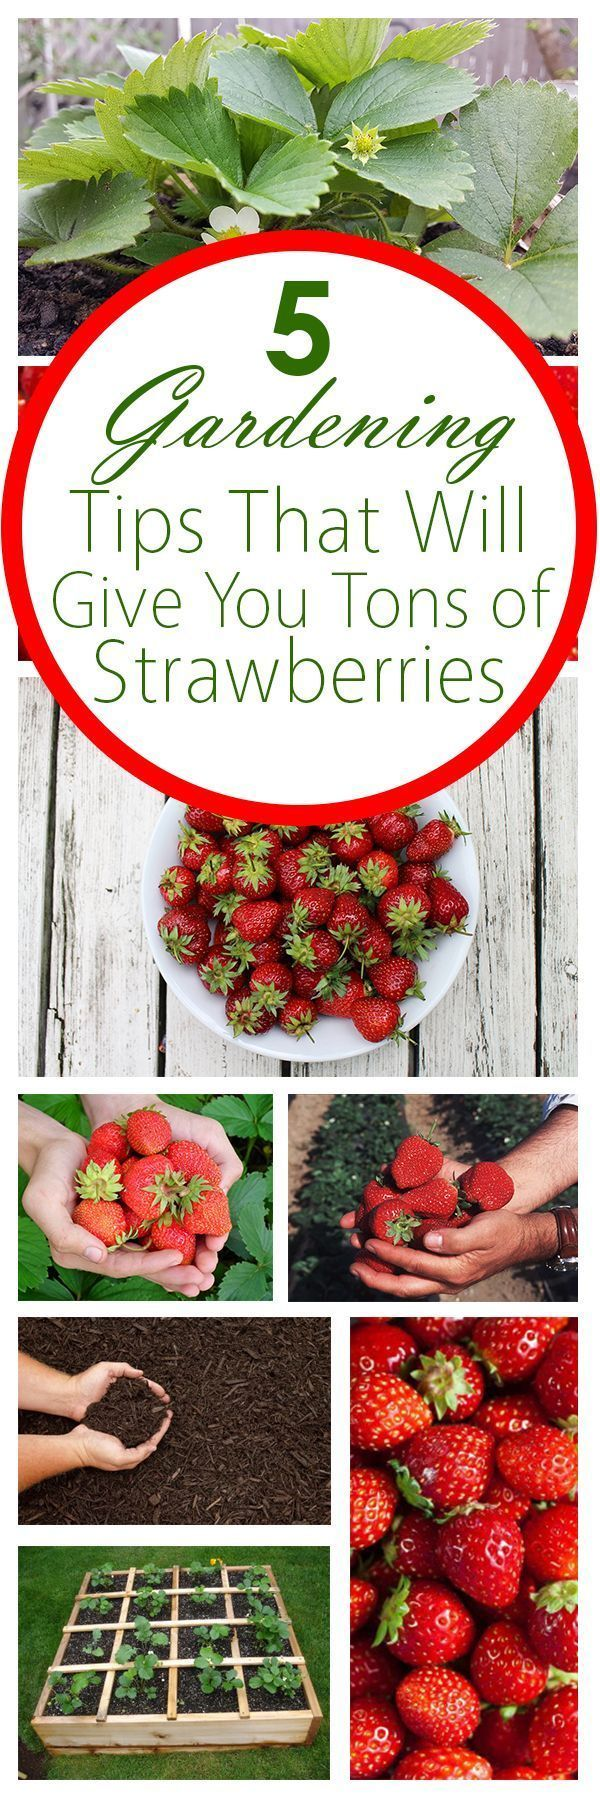 Best 25+ Strawberry plants ideas on Pinterest